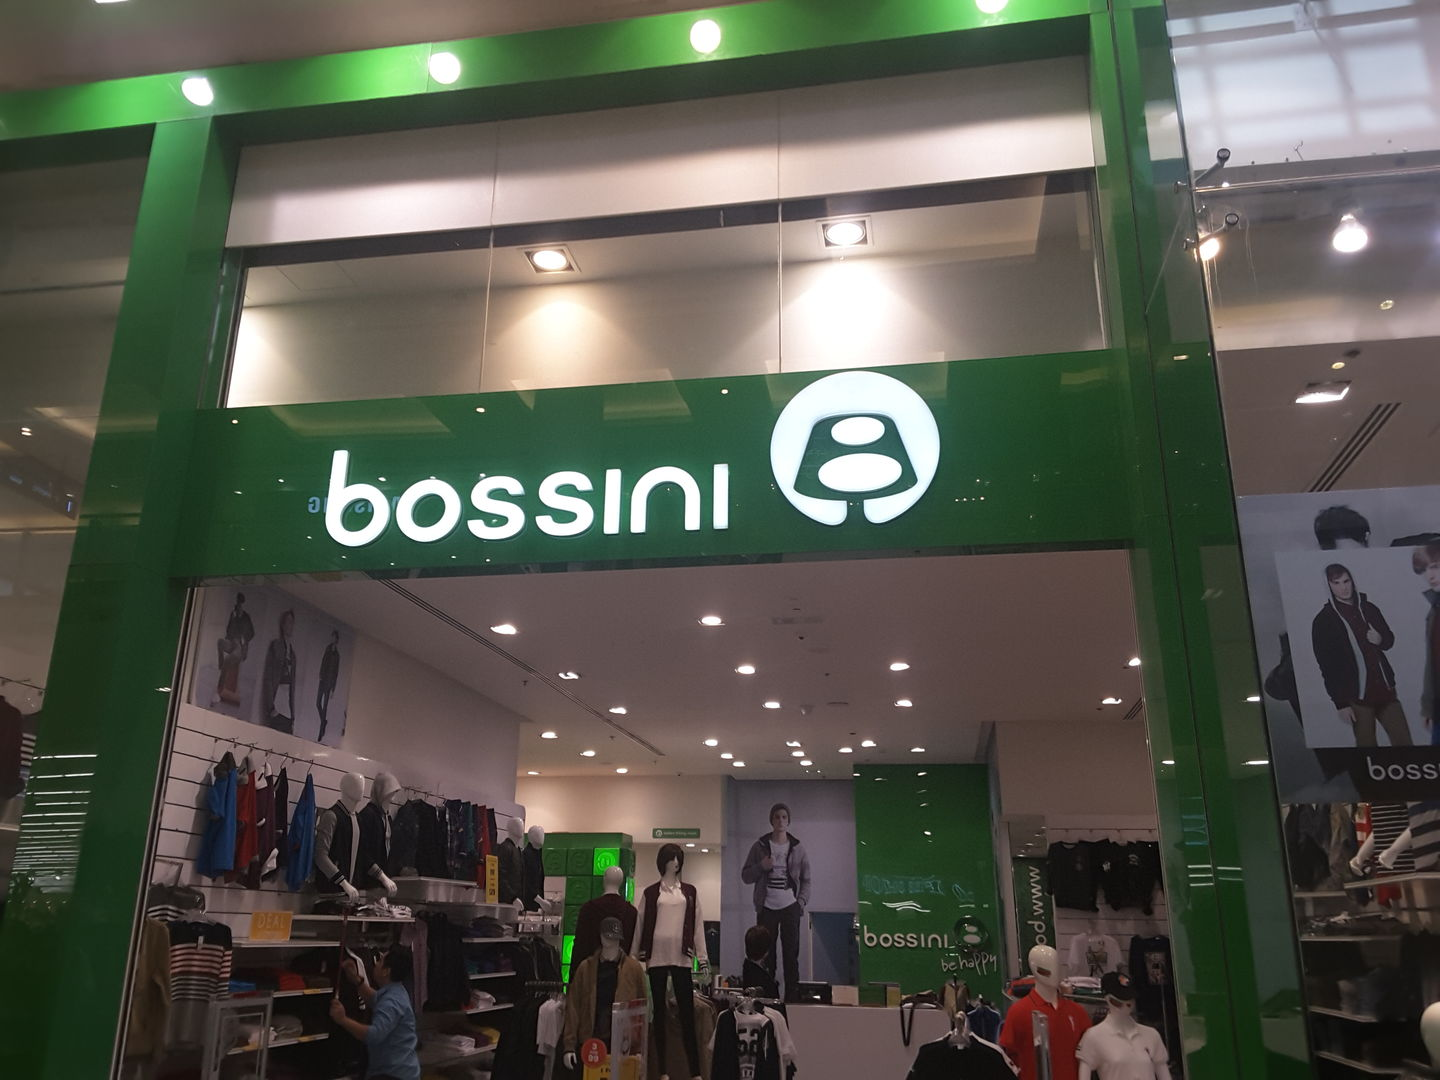 HiDubai-business-bossini-shopping-apparel-al-barsha-1-dubai-2